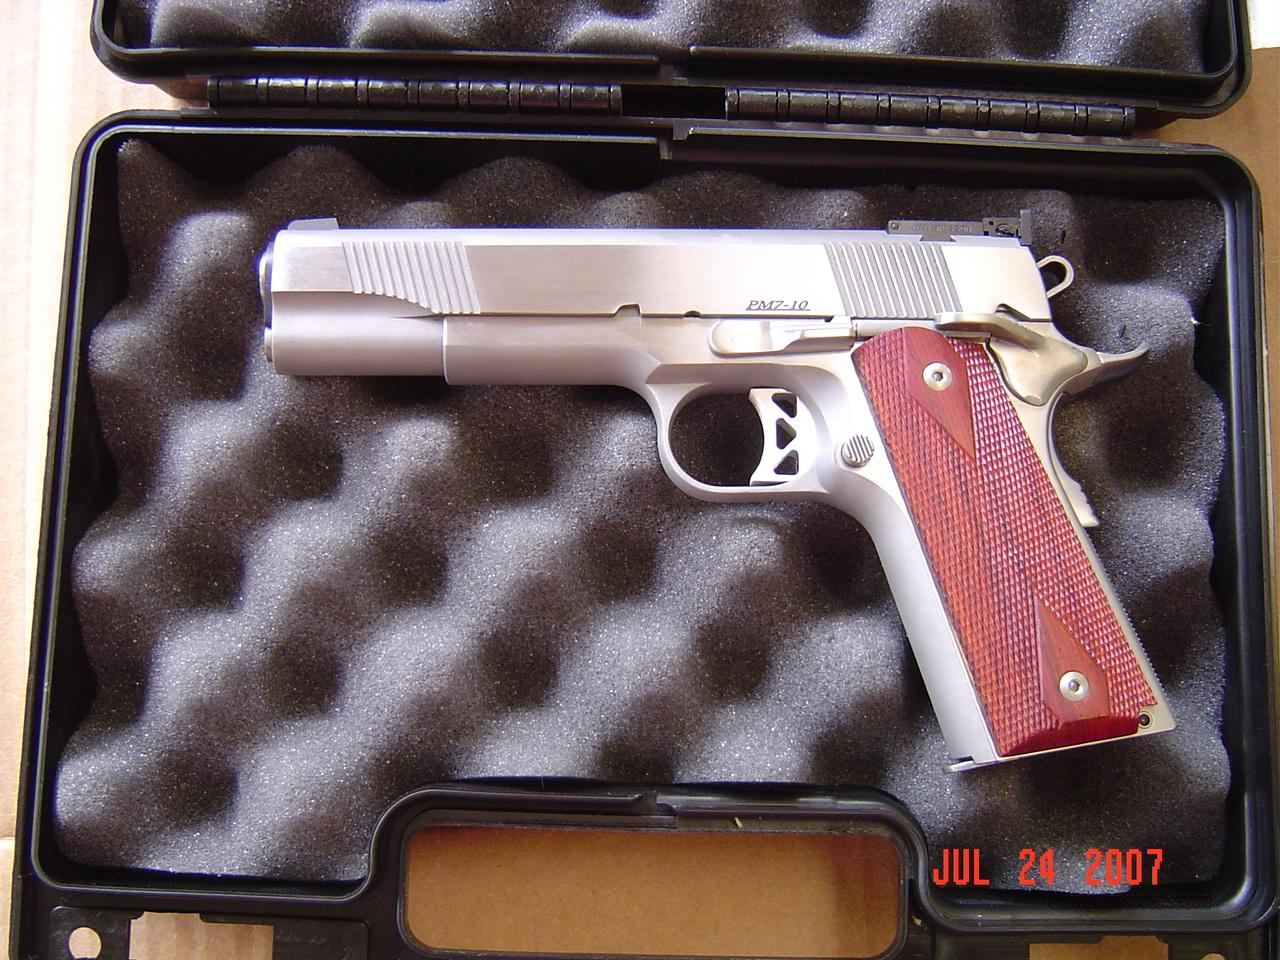 DAN WESSON PM7 IN 10MM  Guns > Pistols > 1911 Pistol Copies (non-Colt)